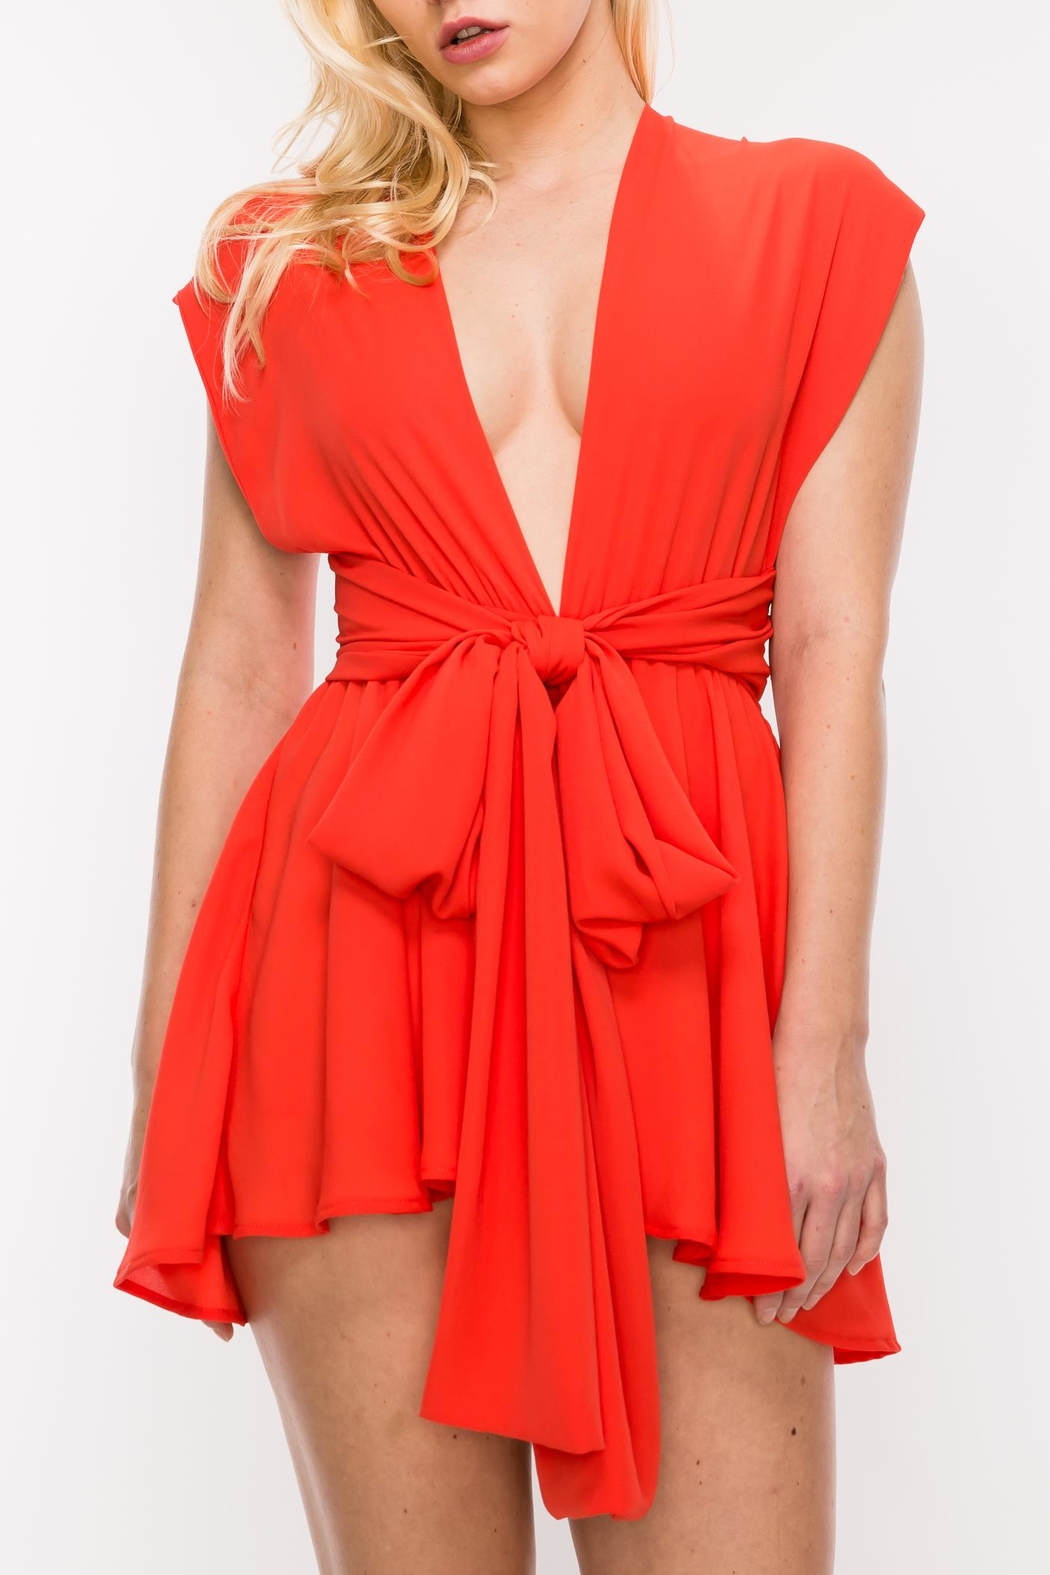 HYFVE Three Way Romper - Front Cropped Image